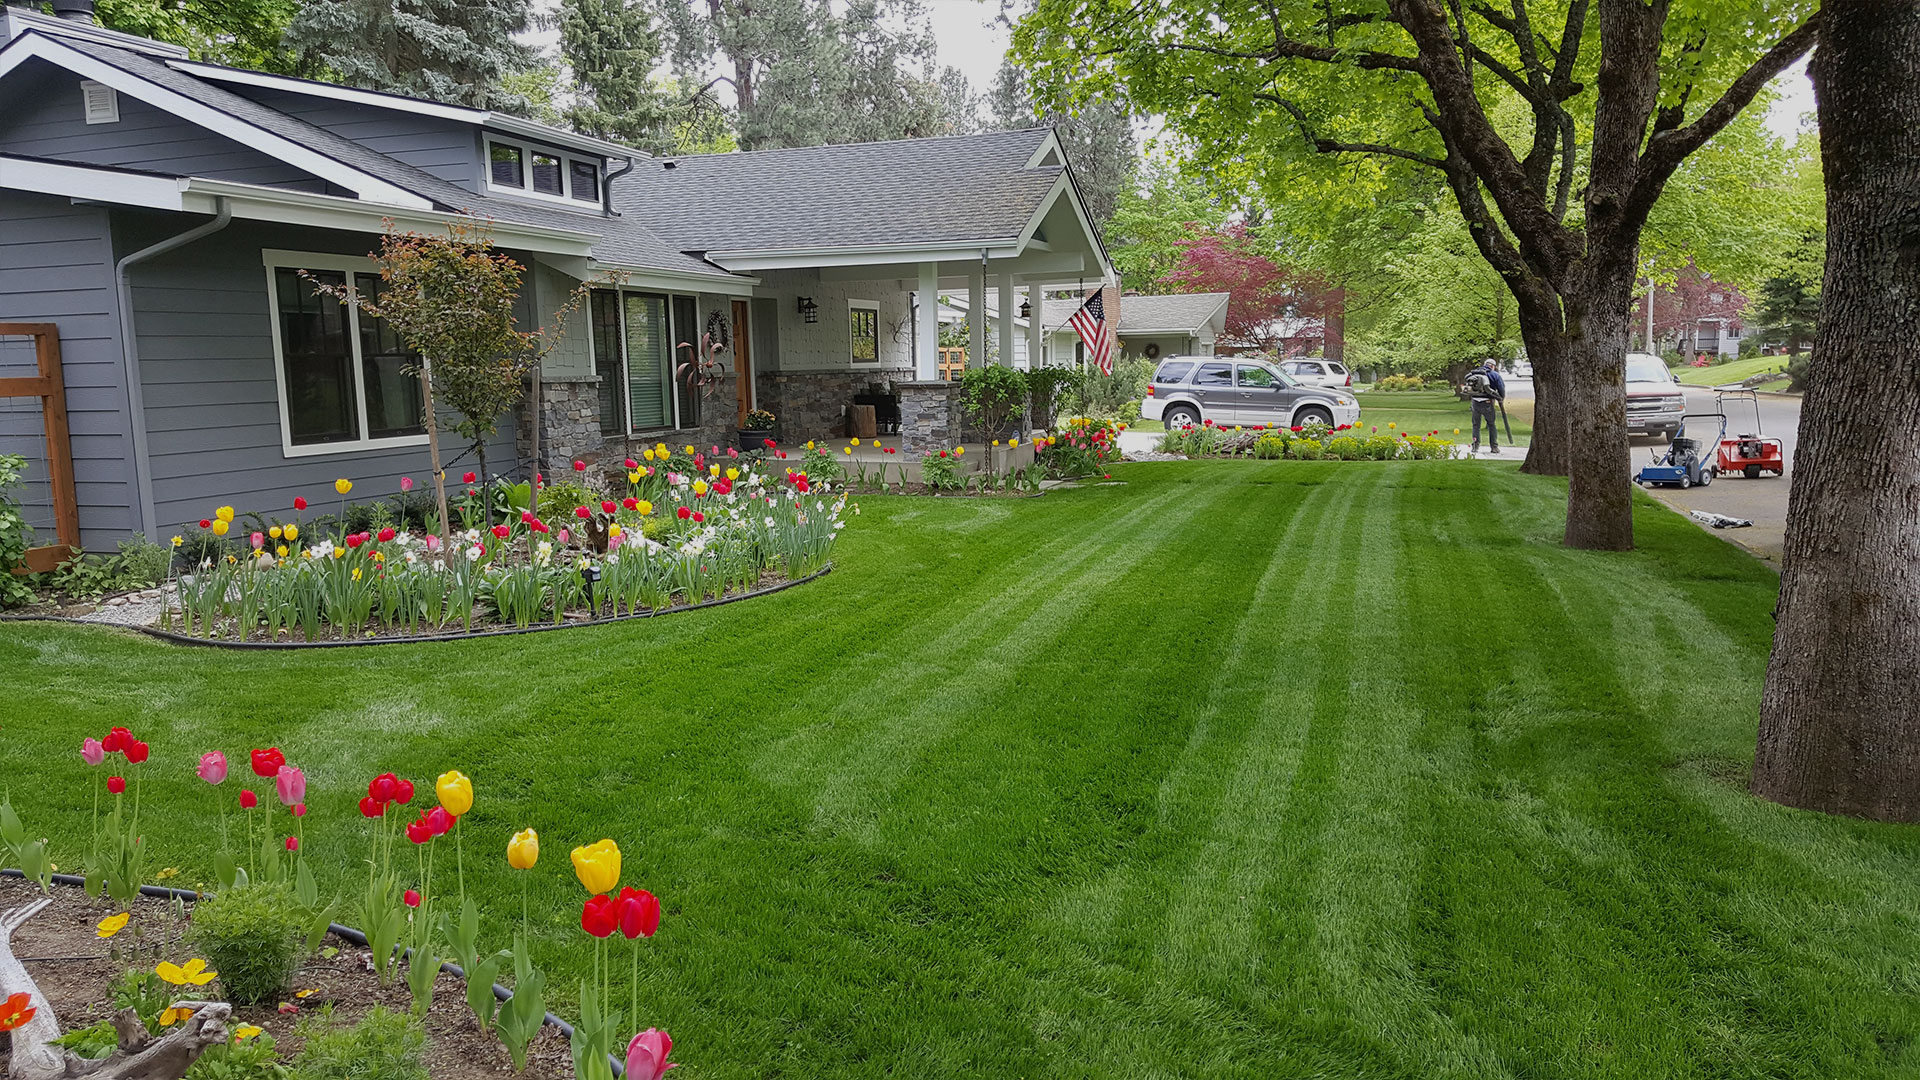 LakeView Lawncare & Landscape Co. Landscaping, Yard Maintenance and Sprinkler Repairs slide 5